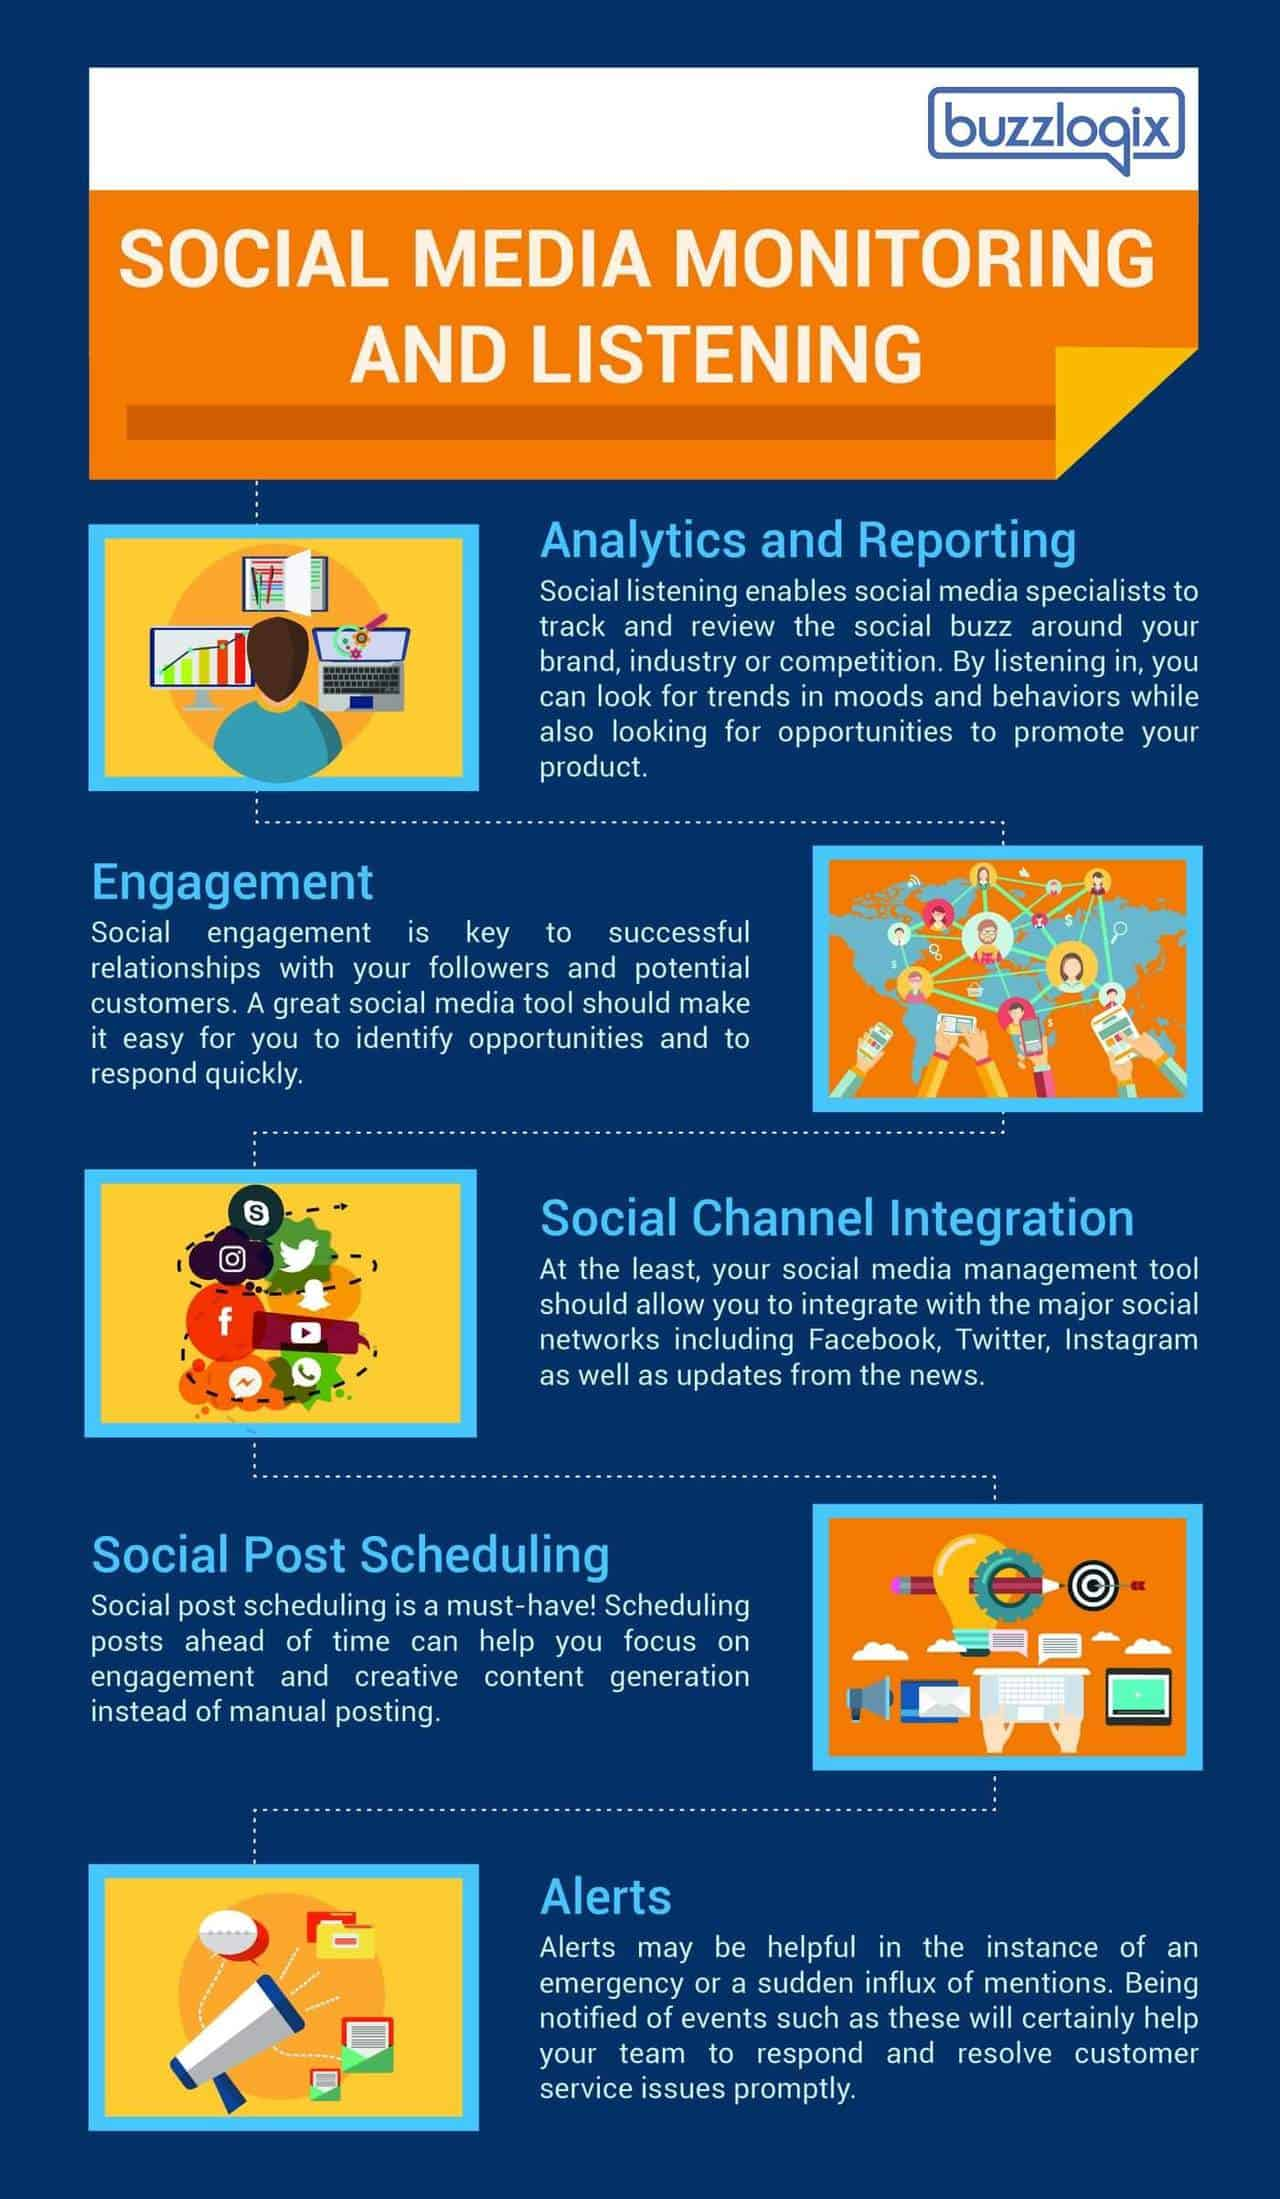 For more information on the key components of both social media monitoring and listening, check out this infographic.